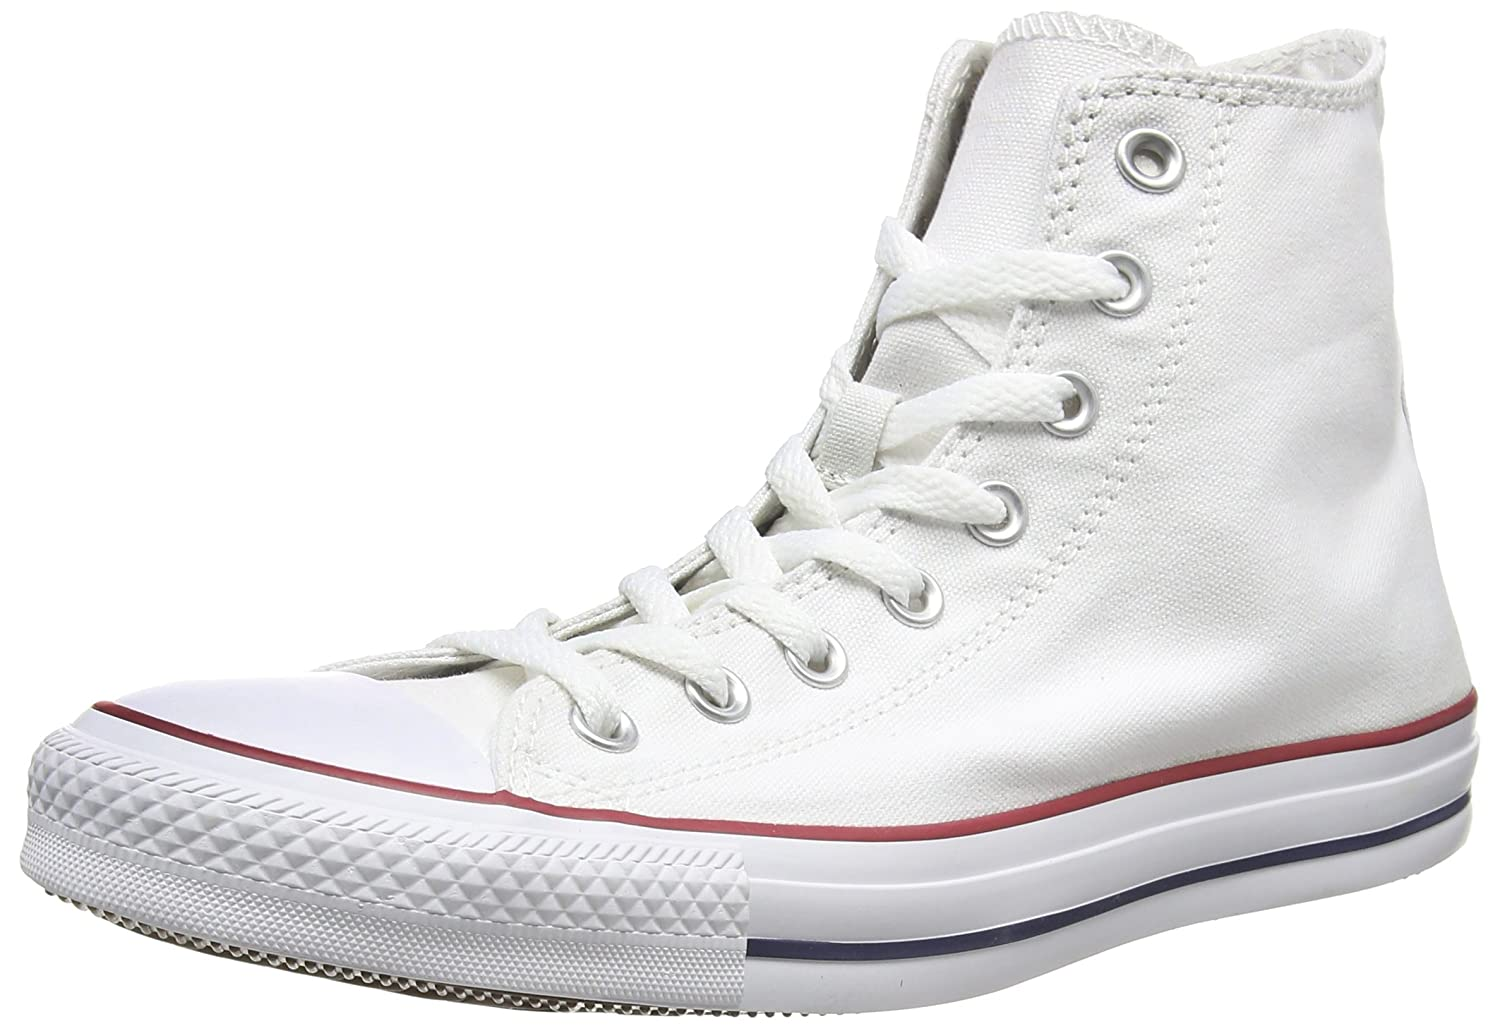 Converse Chuck Taylor All Star Seasonal Color Hi B01MD0BDGT 39 M EU / 8 B(M) US Women / 6 D(M) US Men|White